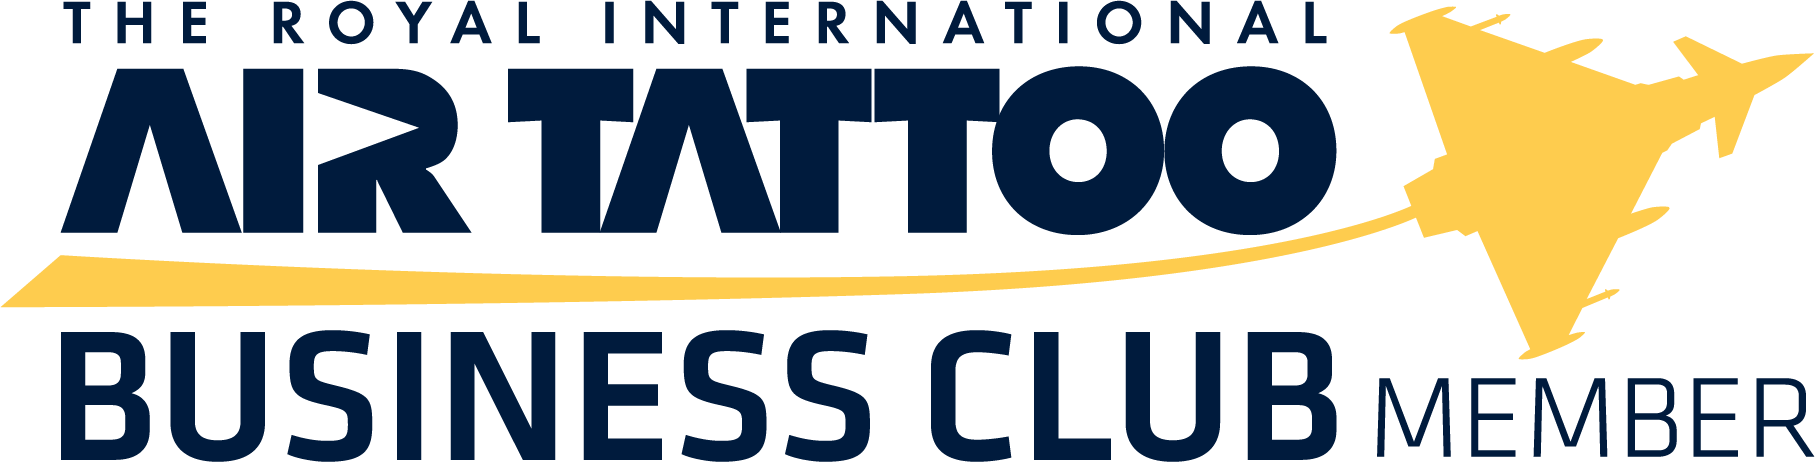 2019 Air Tattoo Business Club member logo